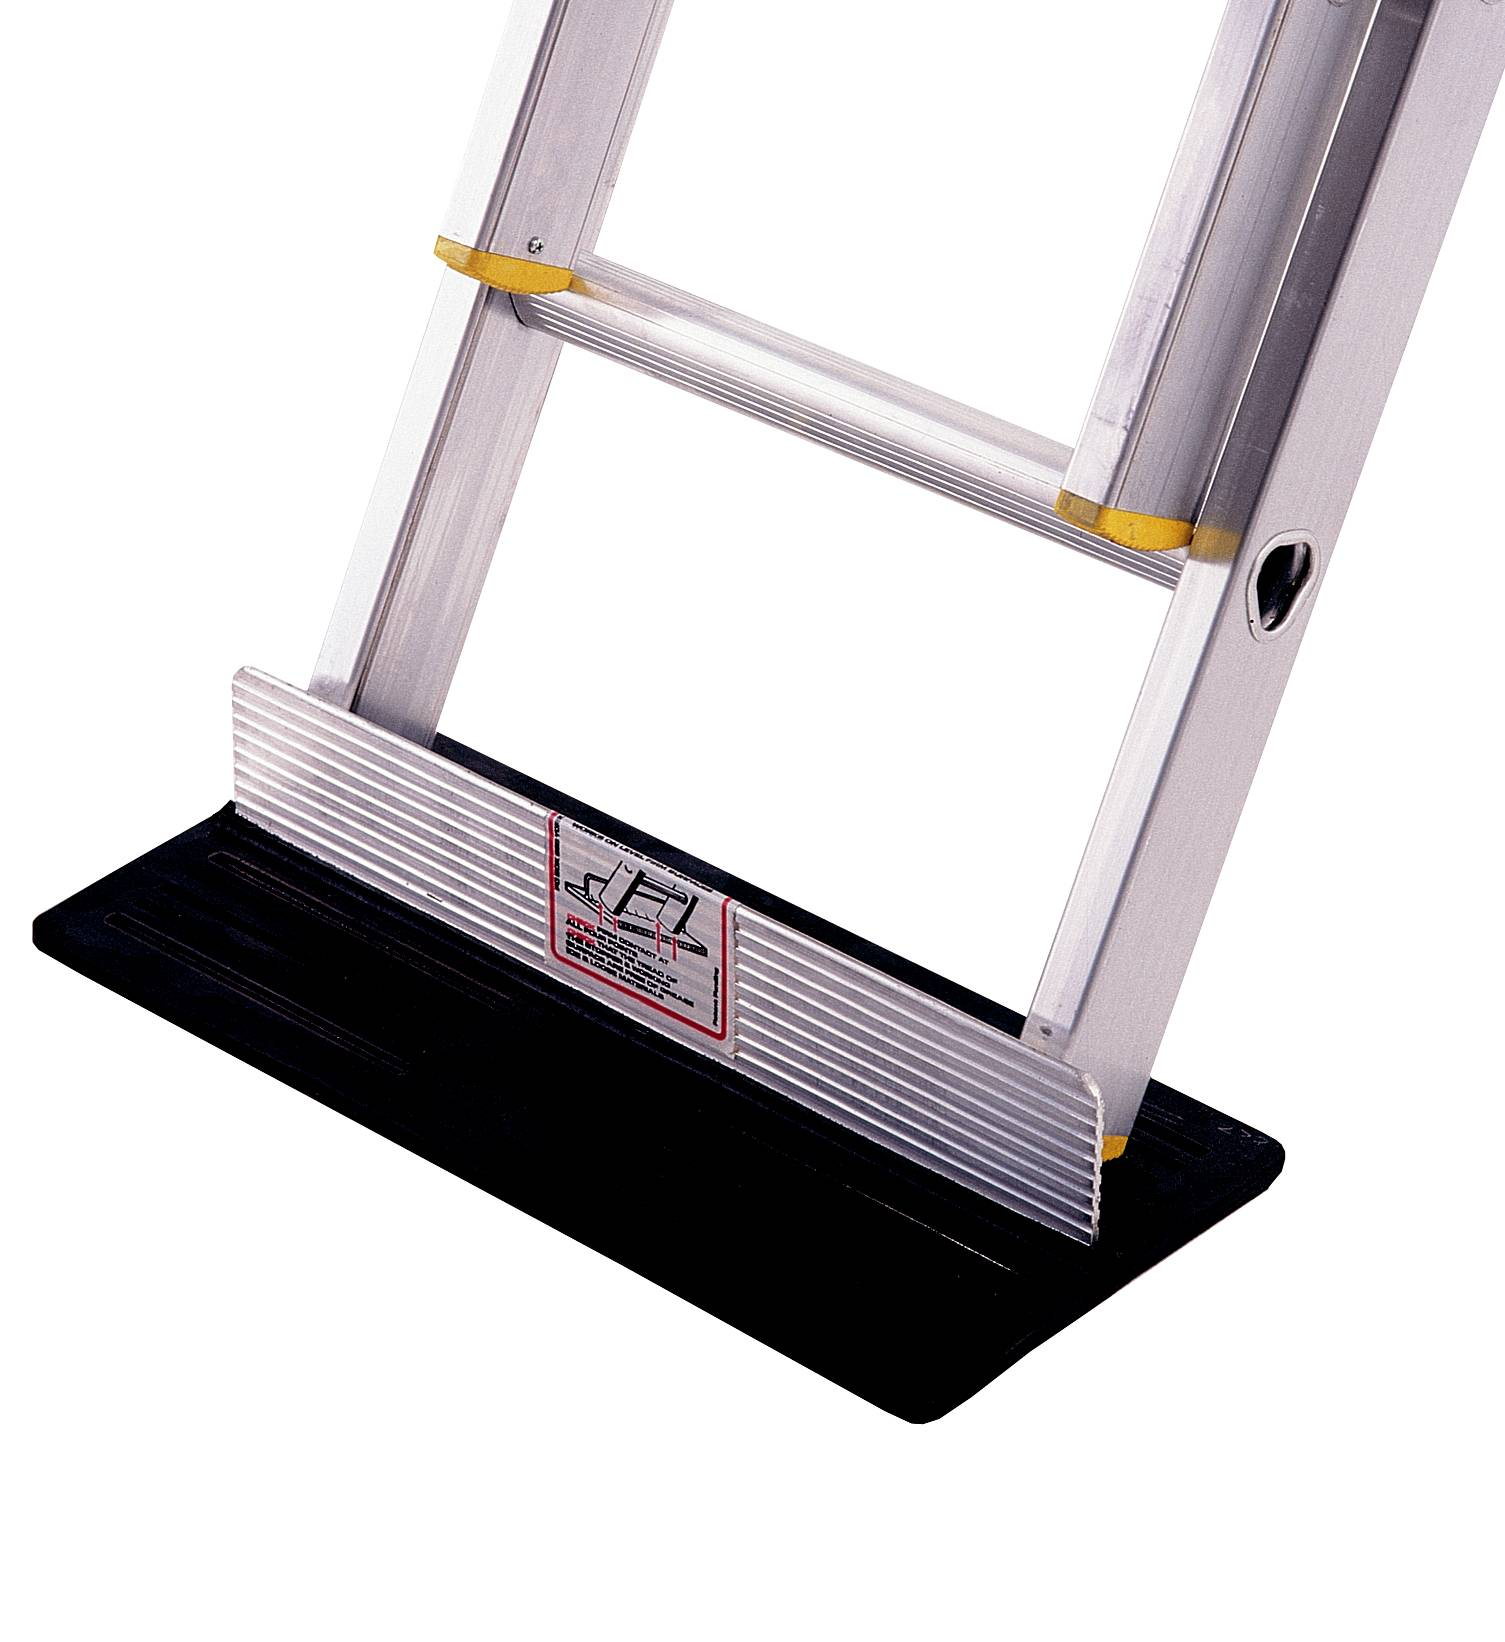 600mm Ladder Stopper